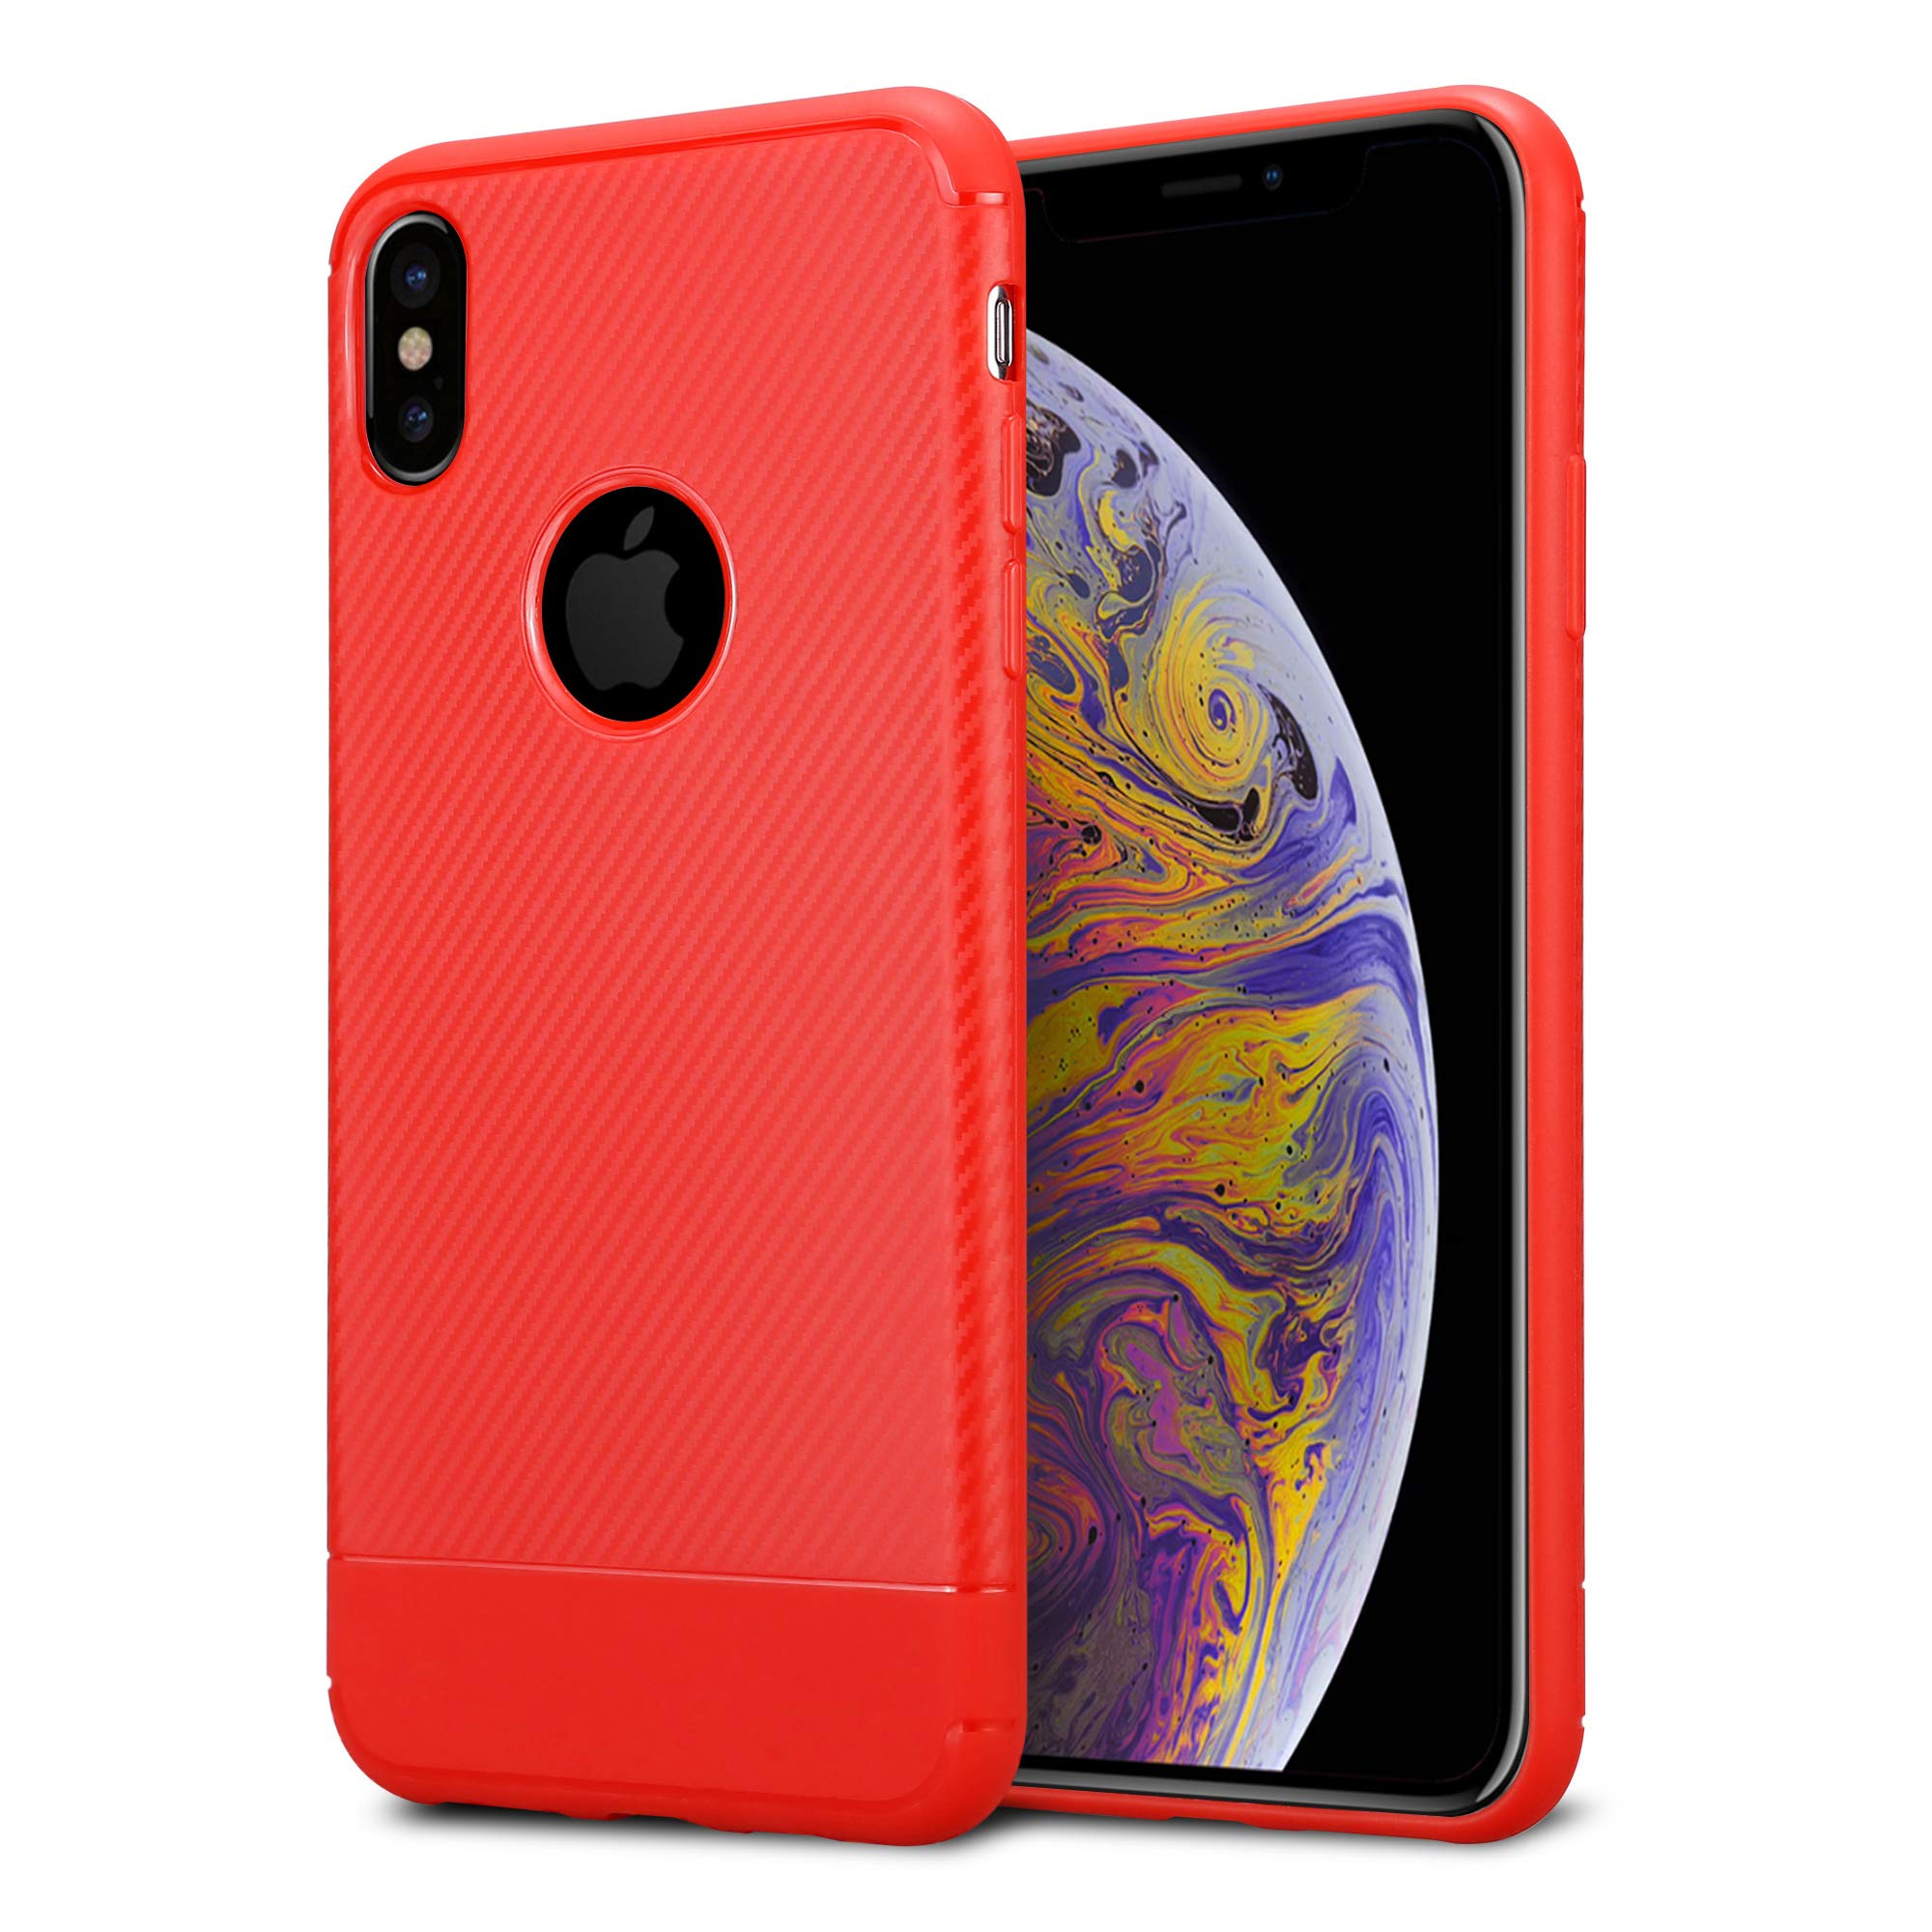 Kit Me Out World Carbon Series Case Designed for iPhone Xs Max, Full Matte Slim Fit Flexible TPU Minimal Durable…